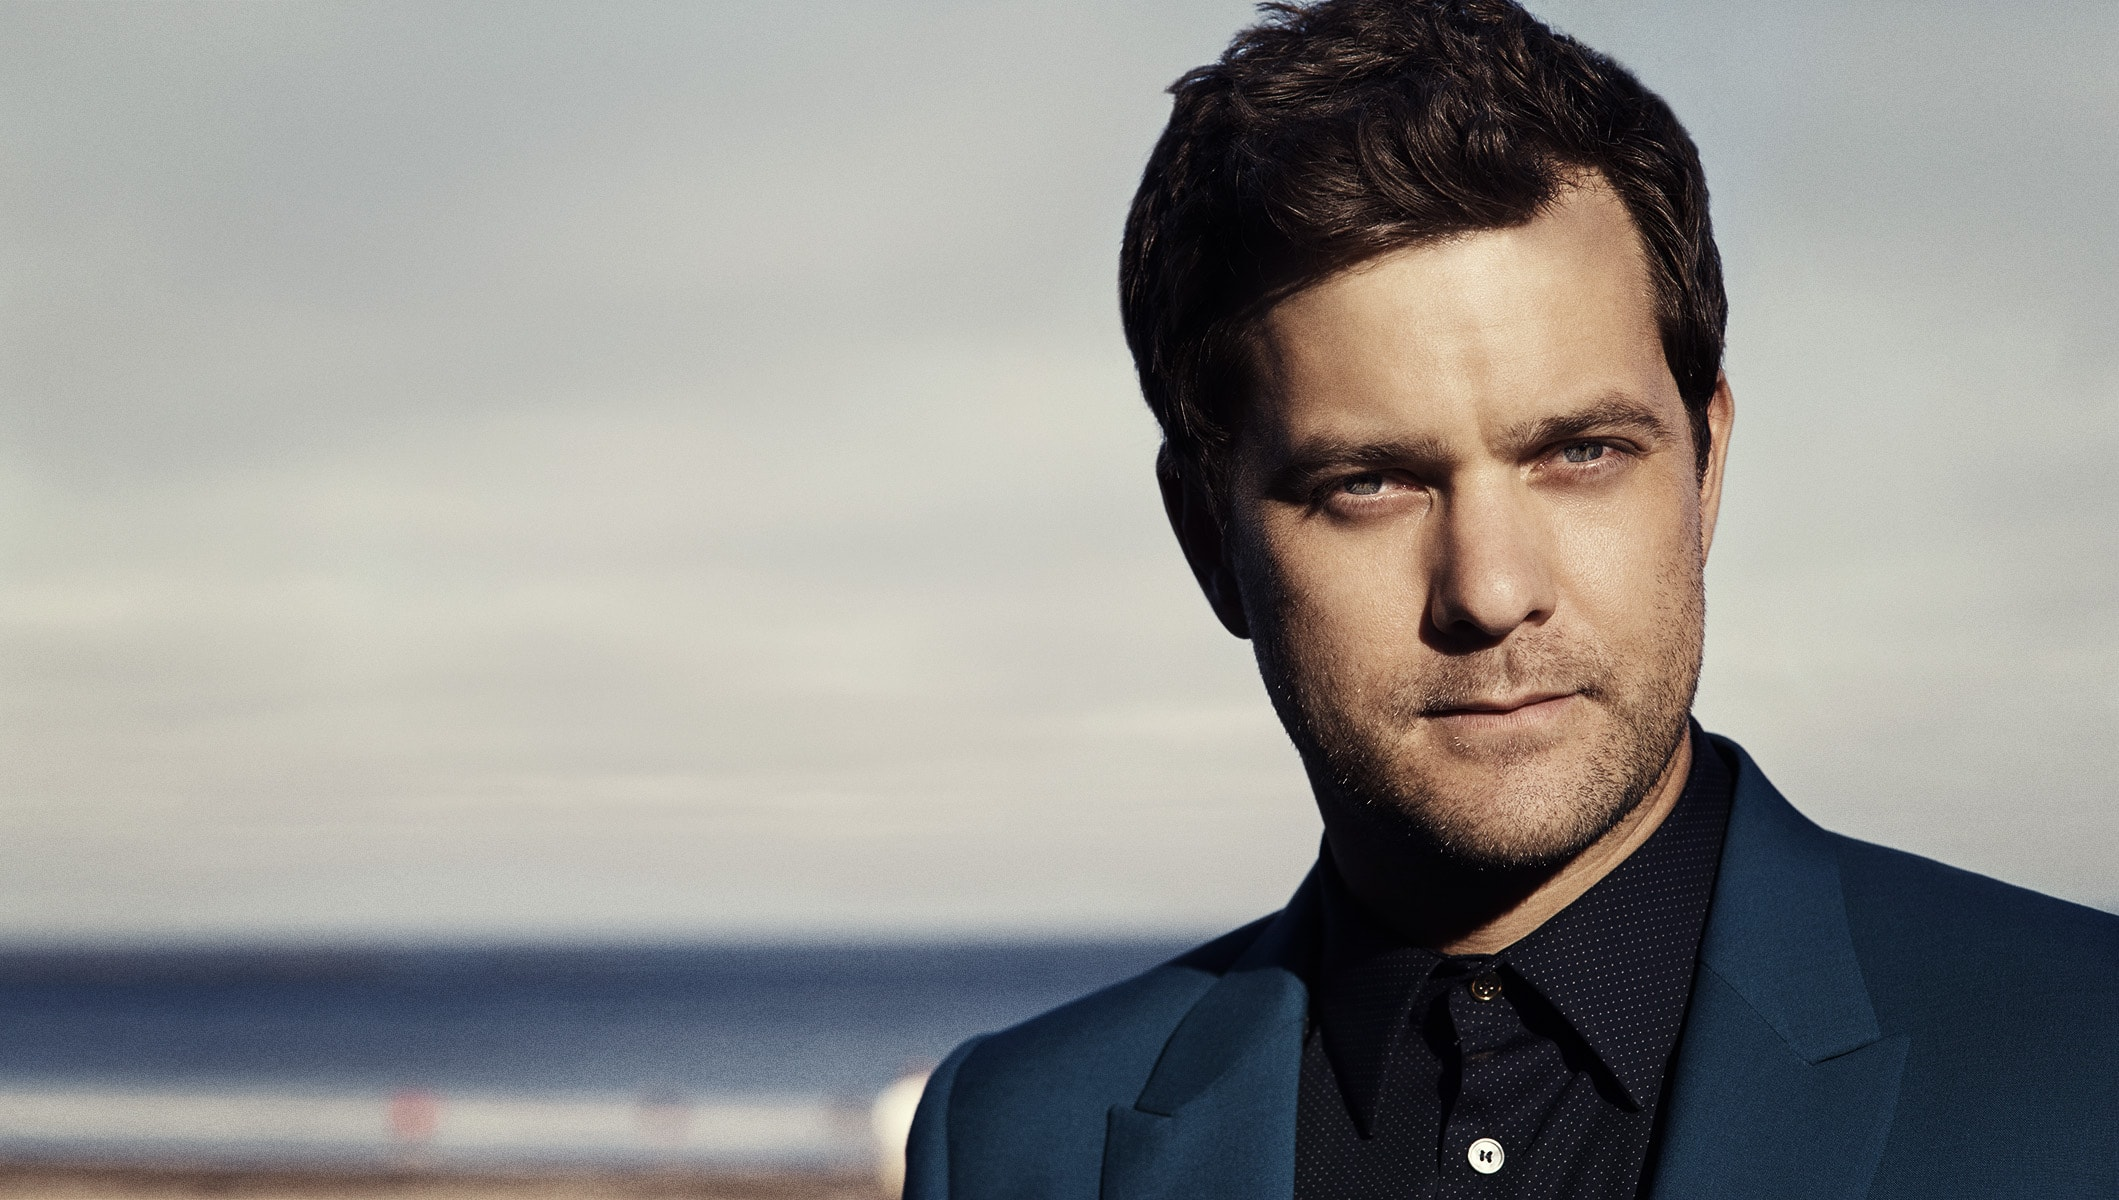 Joshua Jackson Screensavers